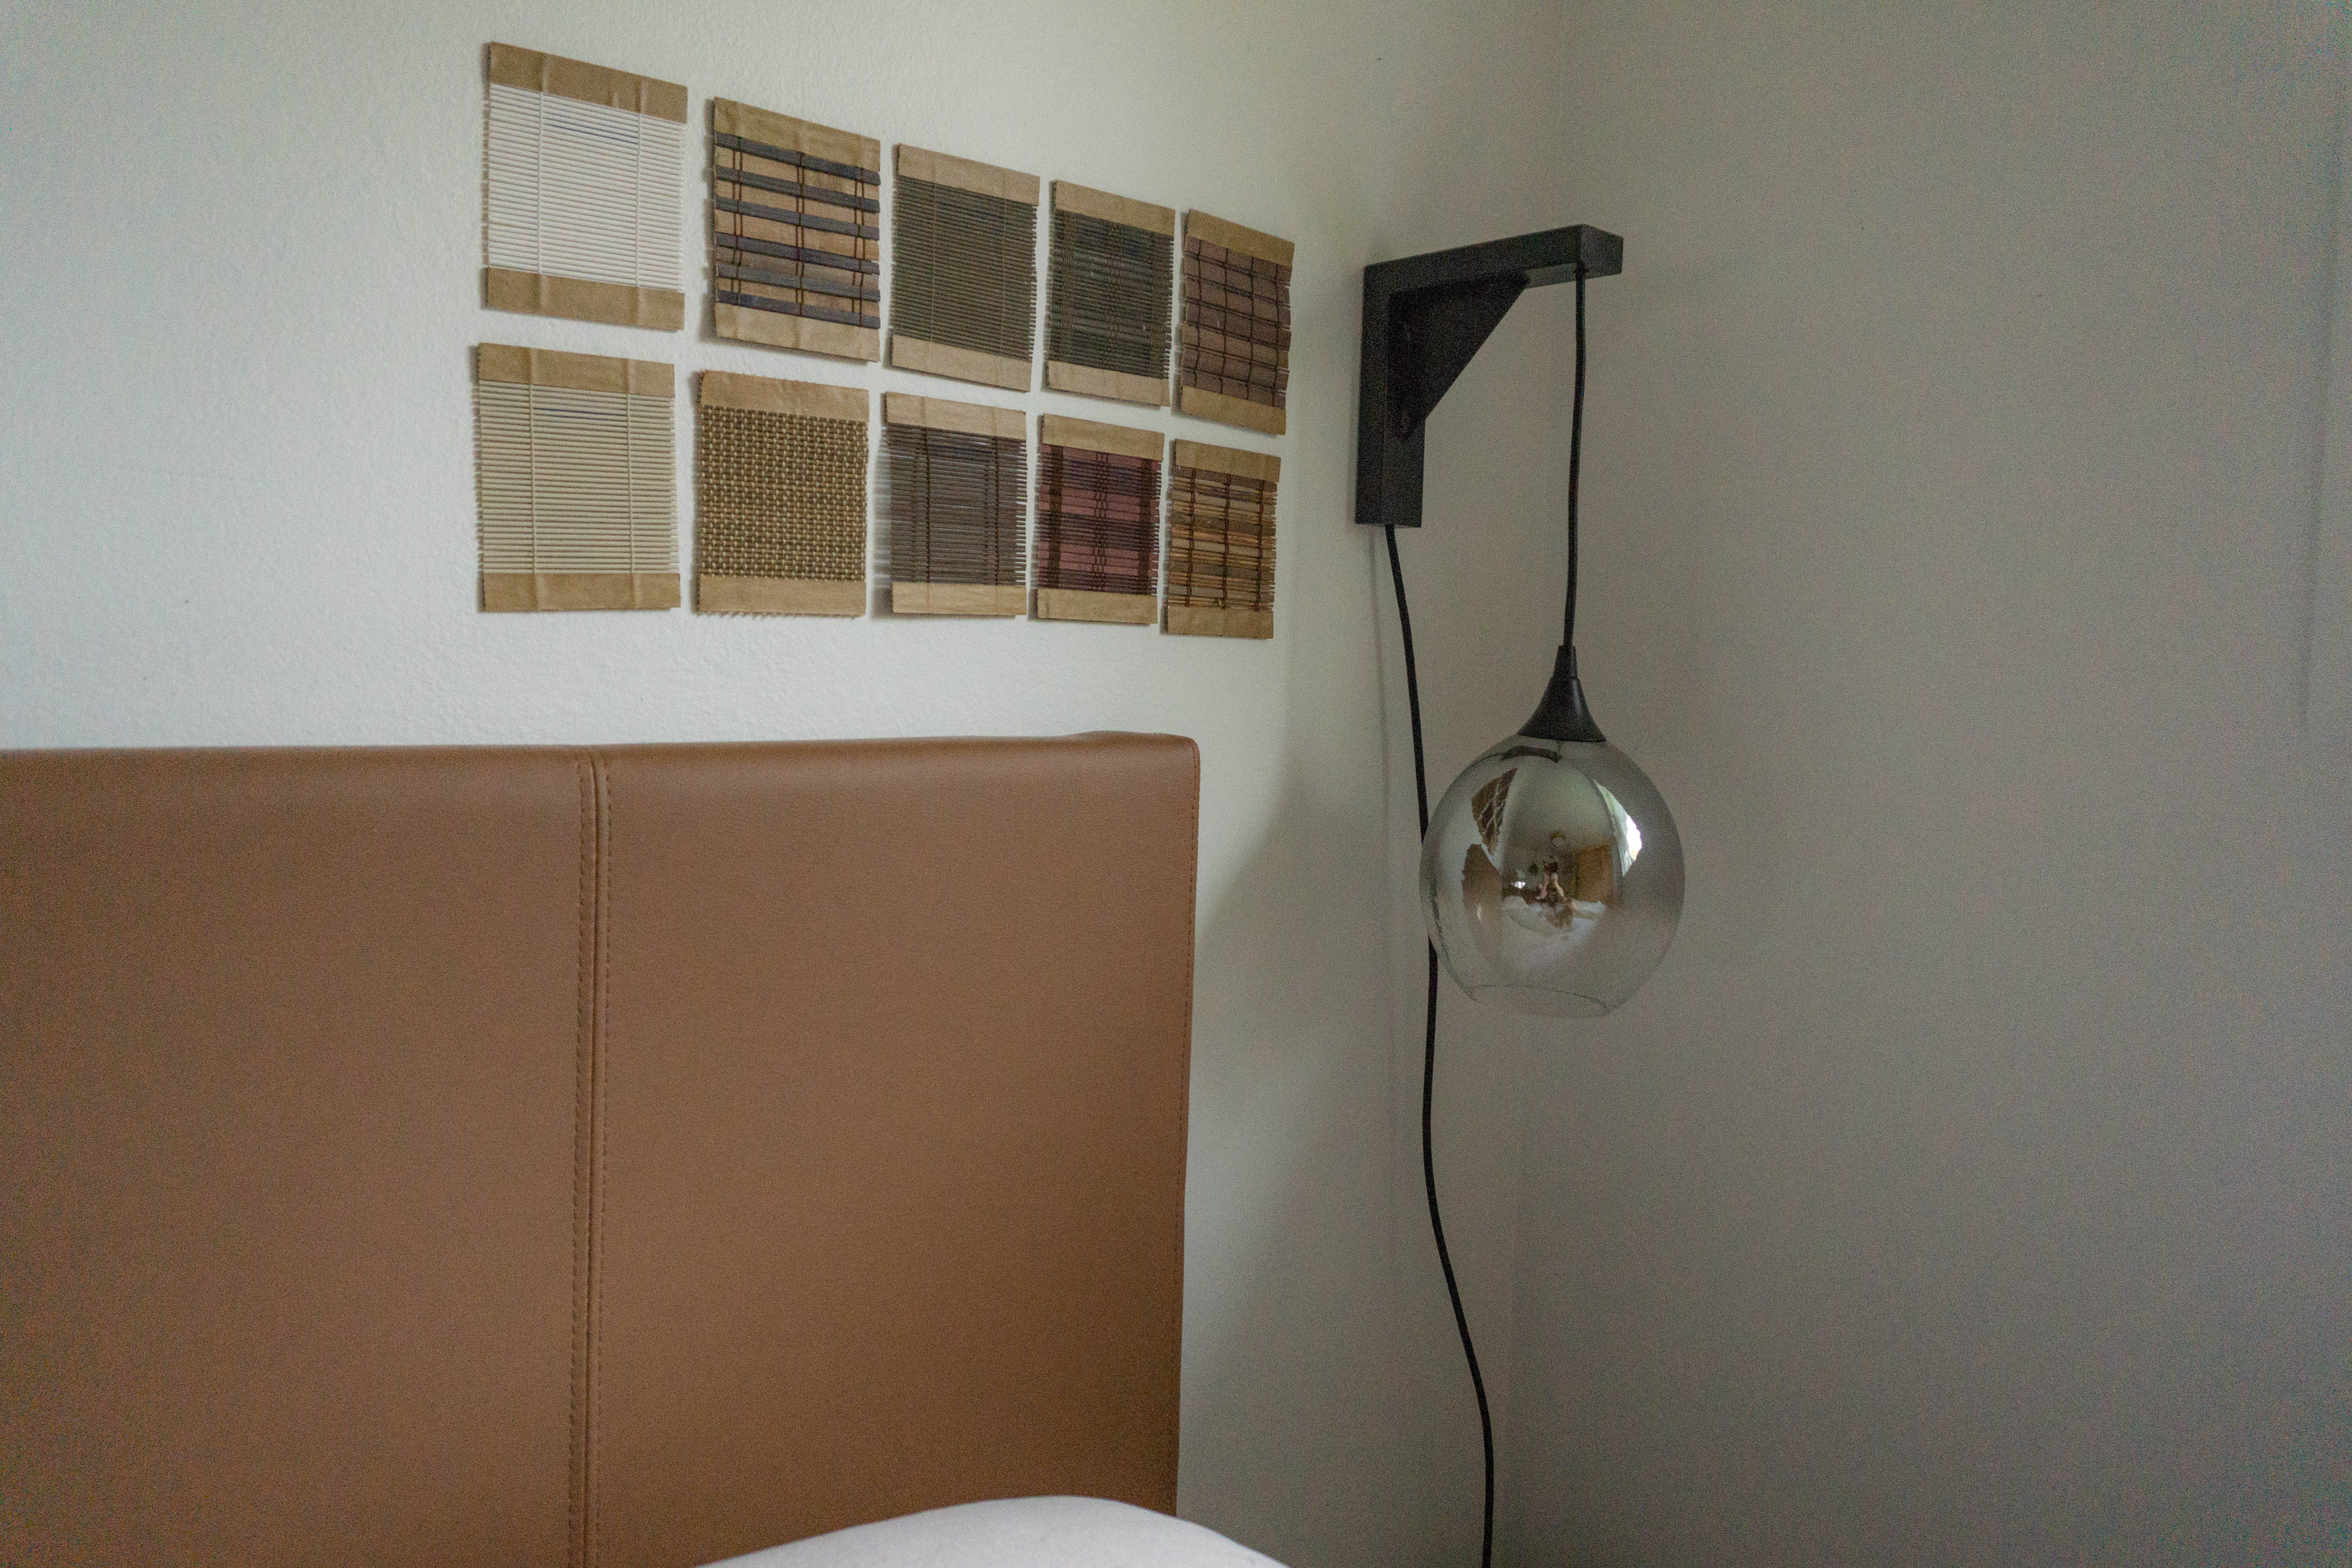 Woven Wood Shade Samples on Wall next to Headboard and Sconce